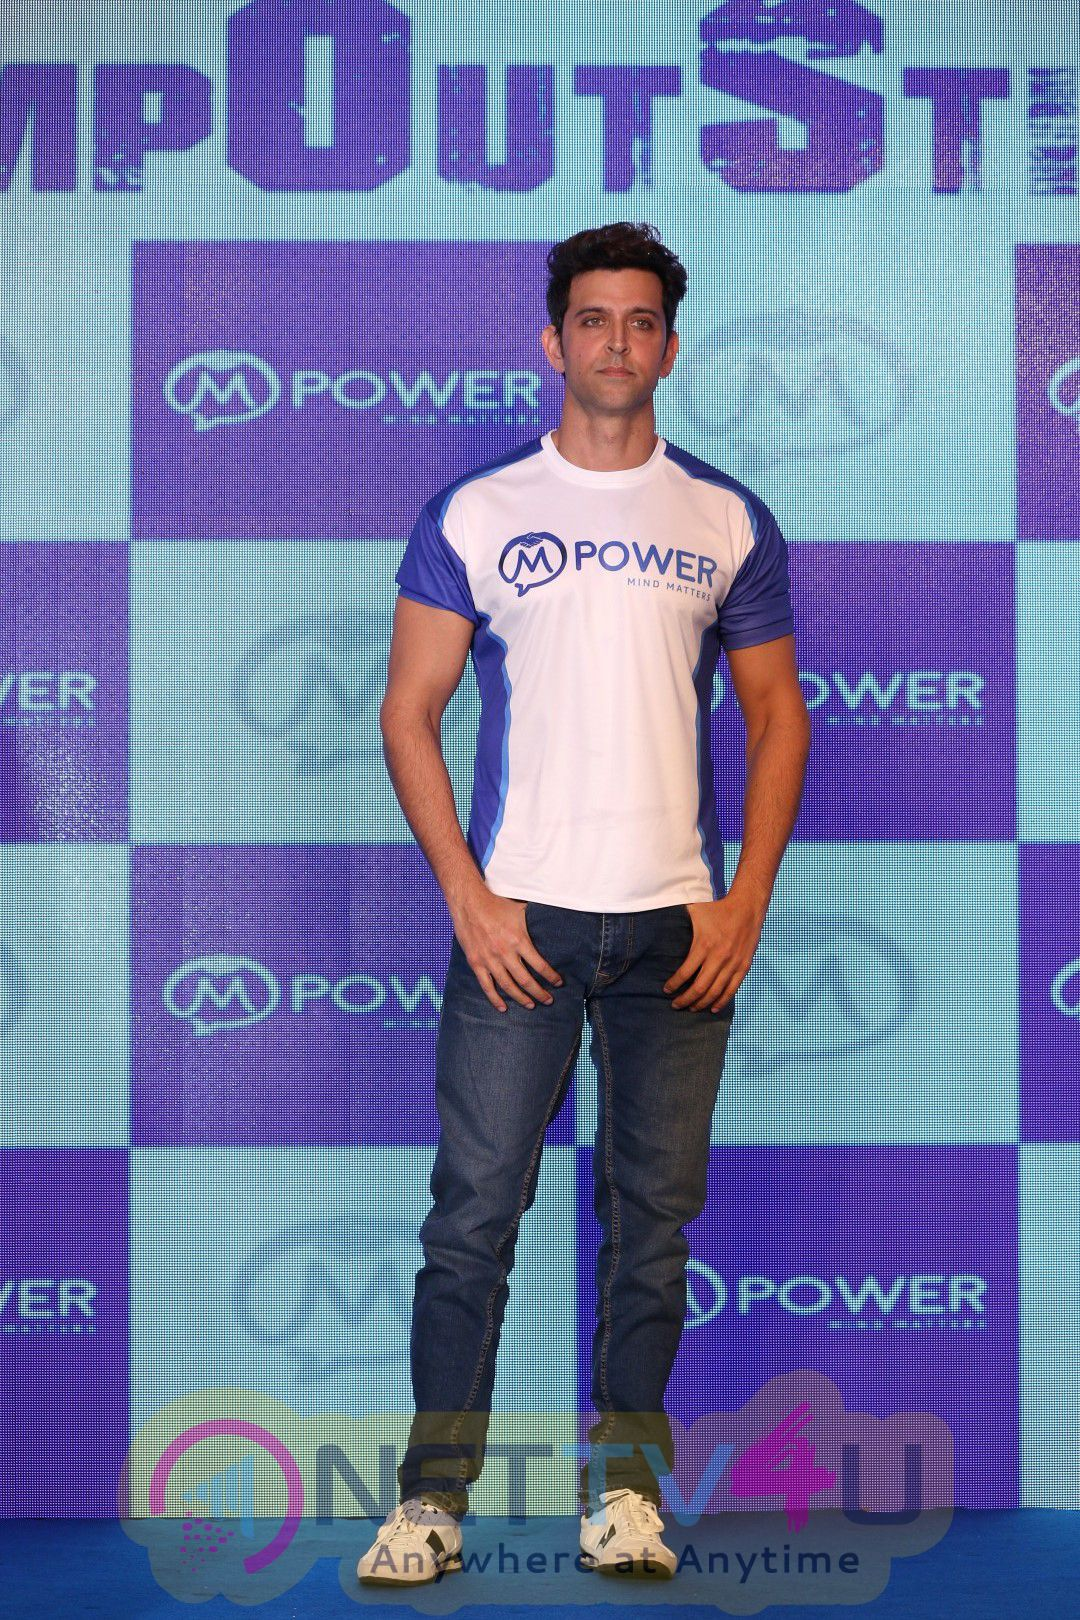 Hrithik Roshan At The Launch Of Mpower's Everyday Heroes Campaign Exclusive Photos